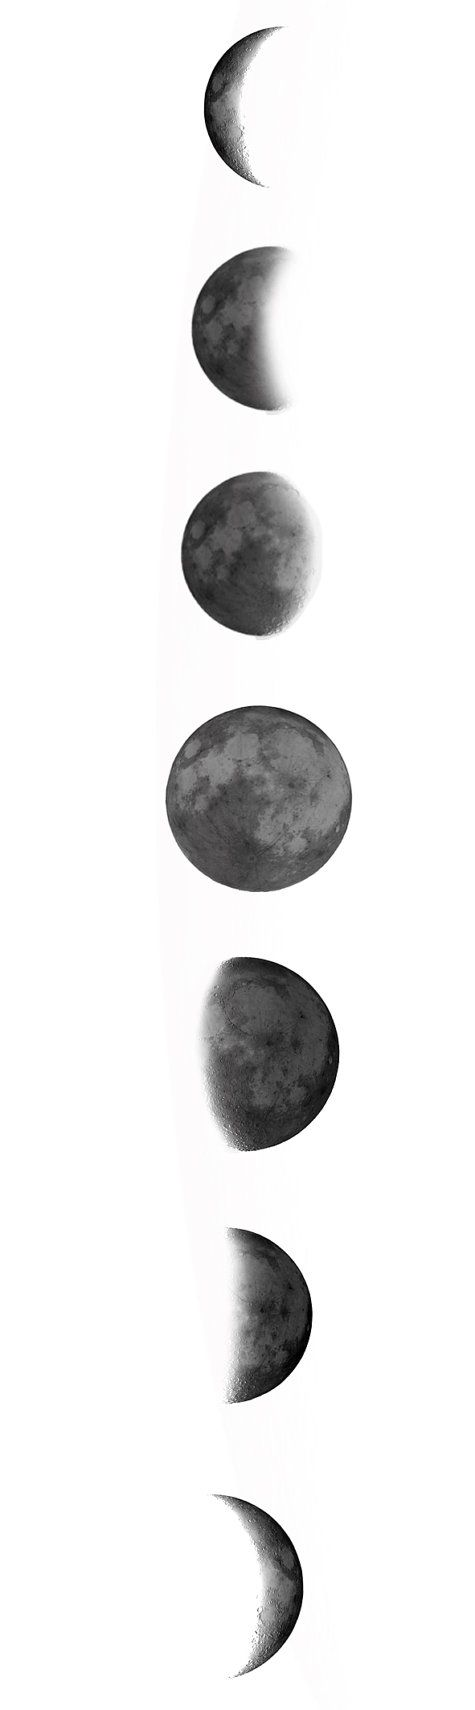 Phases of the moon temporary transfer tattoos by elvenchronicle